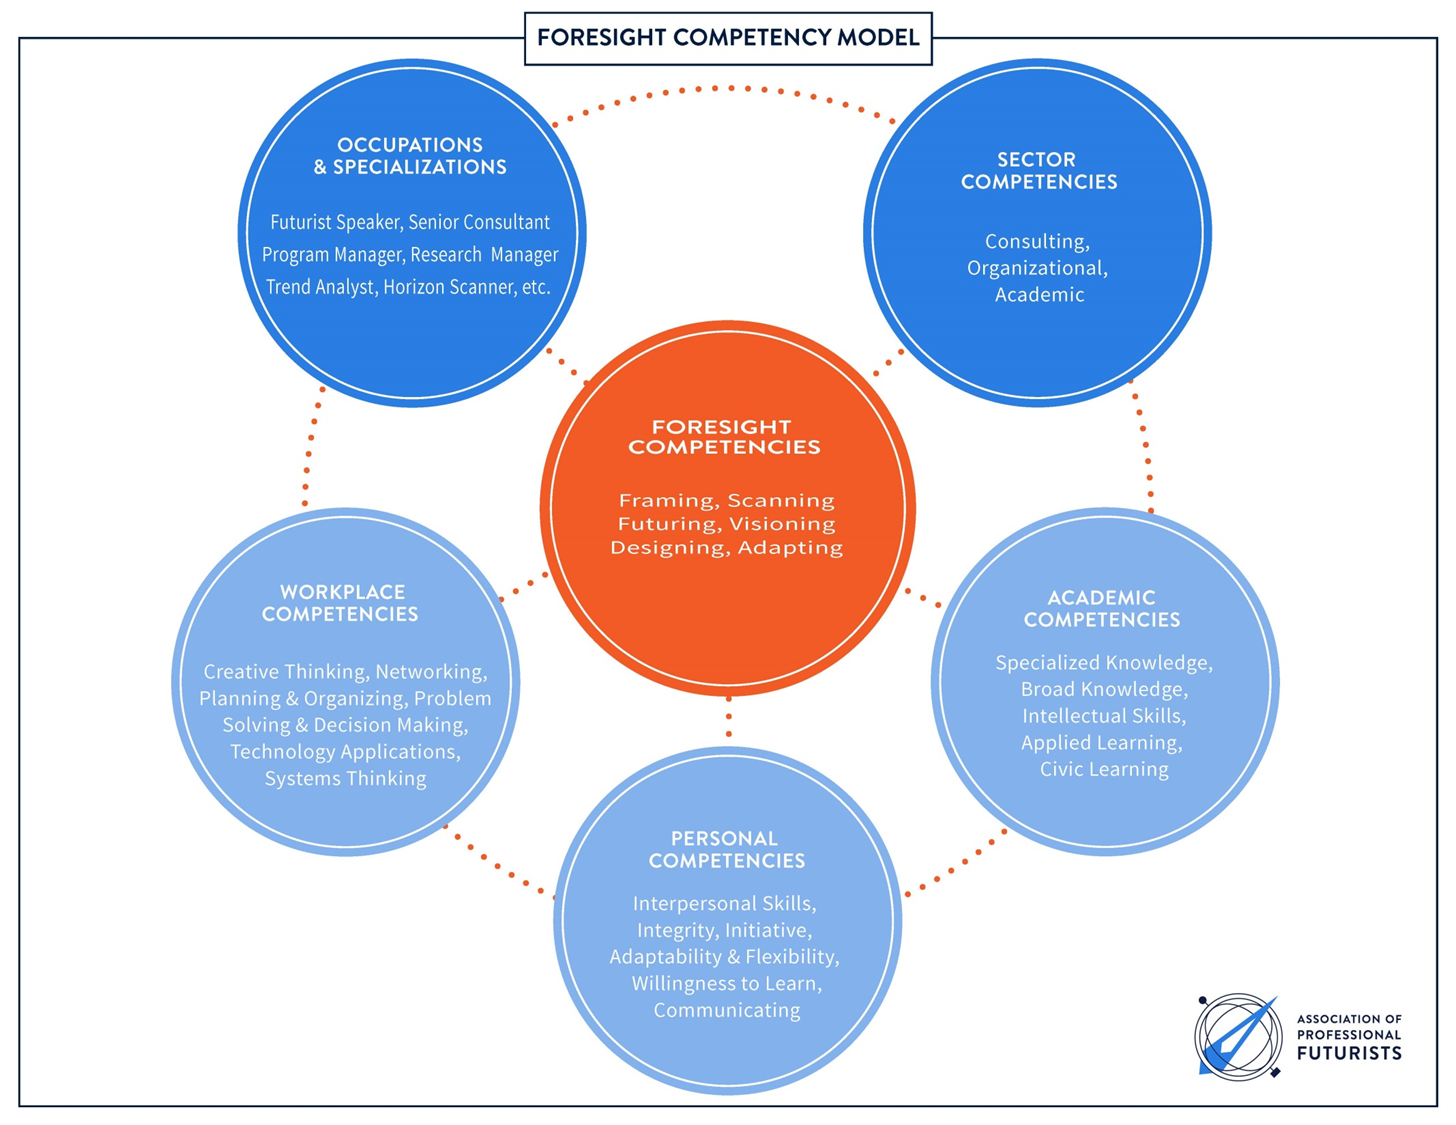 a foresight competency model hinesight for foresight a foresight competency model